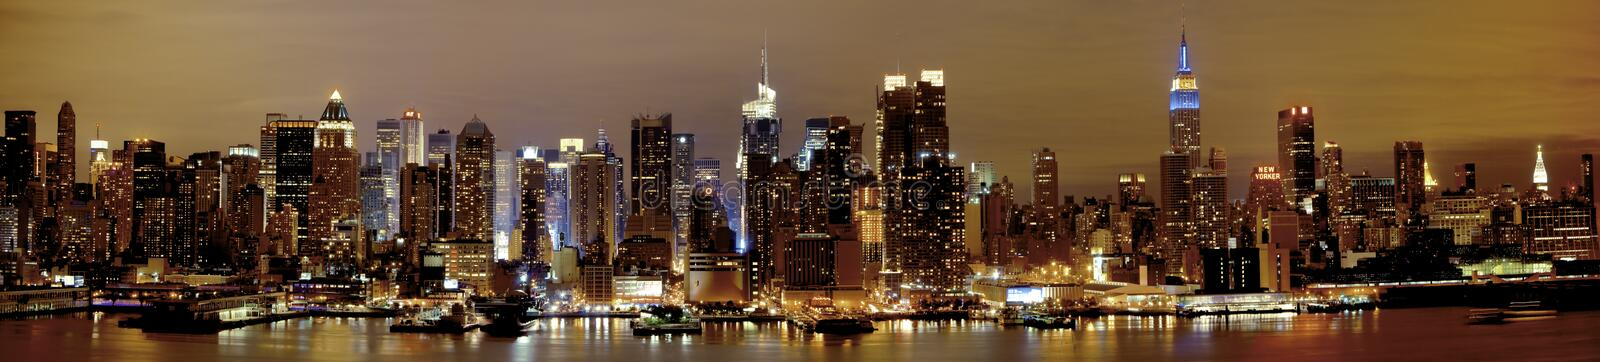 New York Manhattan at Night royalty free stock photo